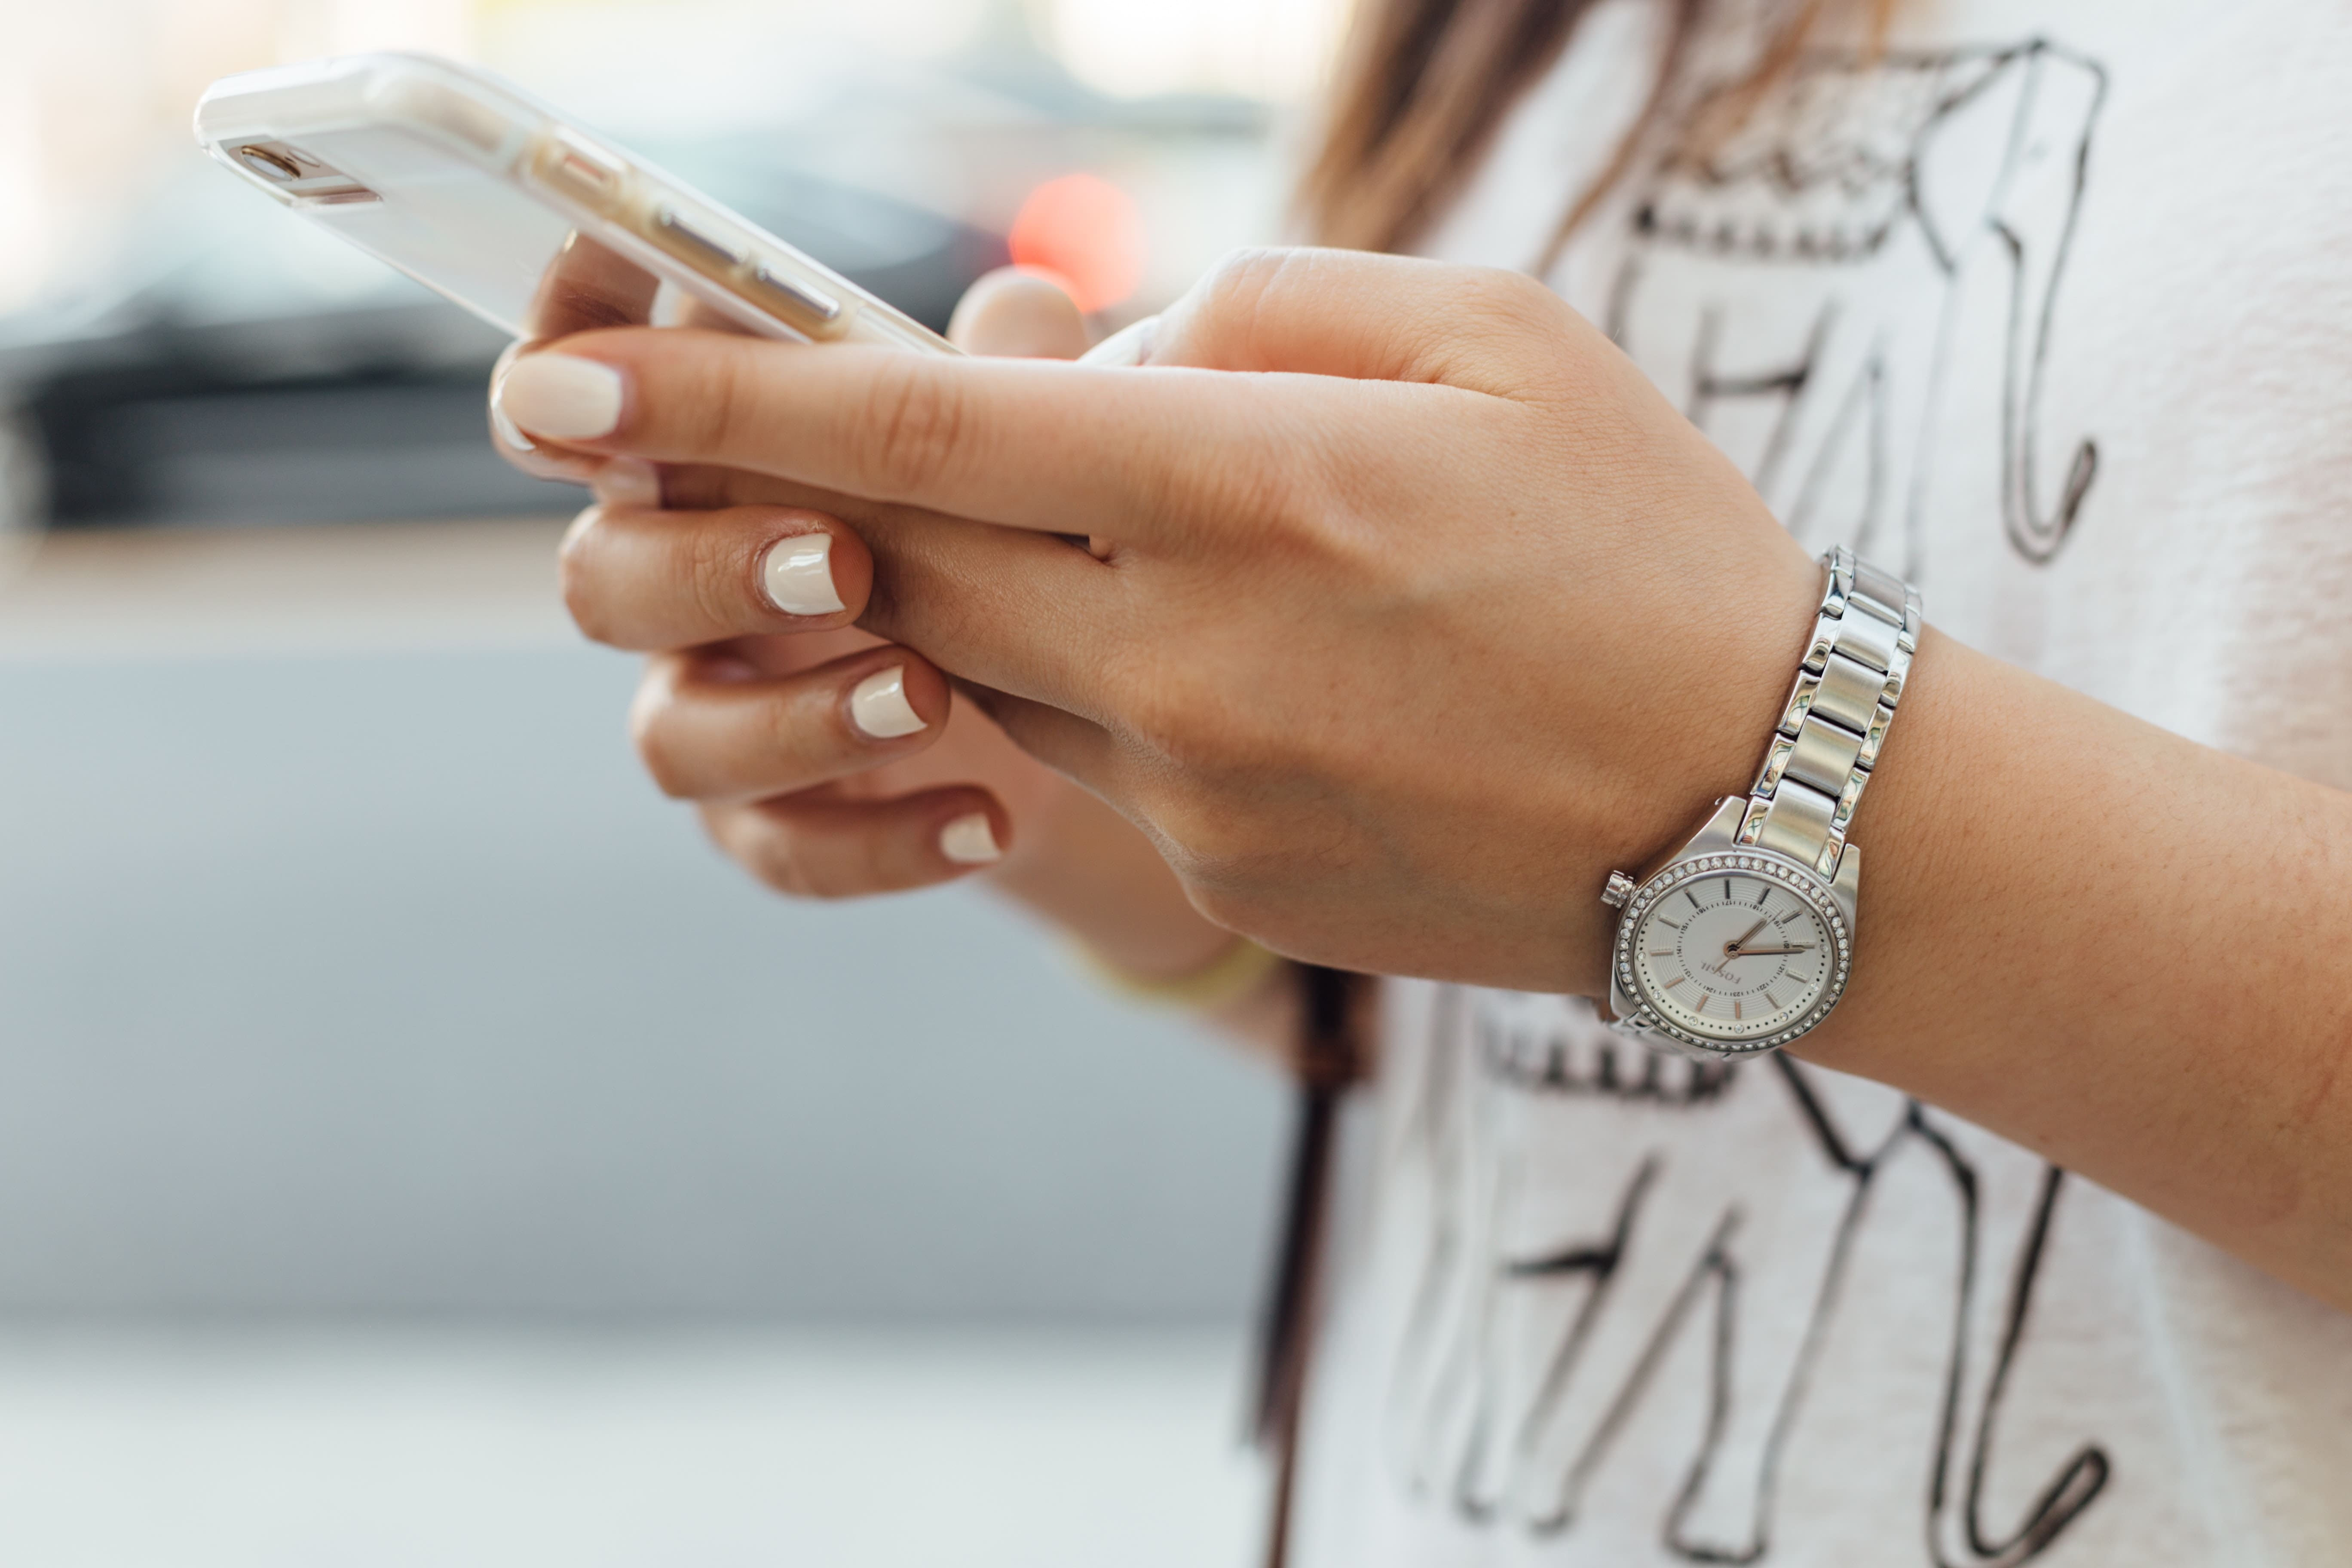 person holding mobile wearing a white top.